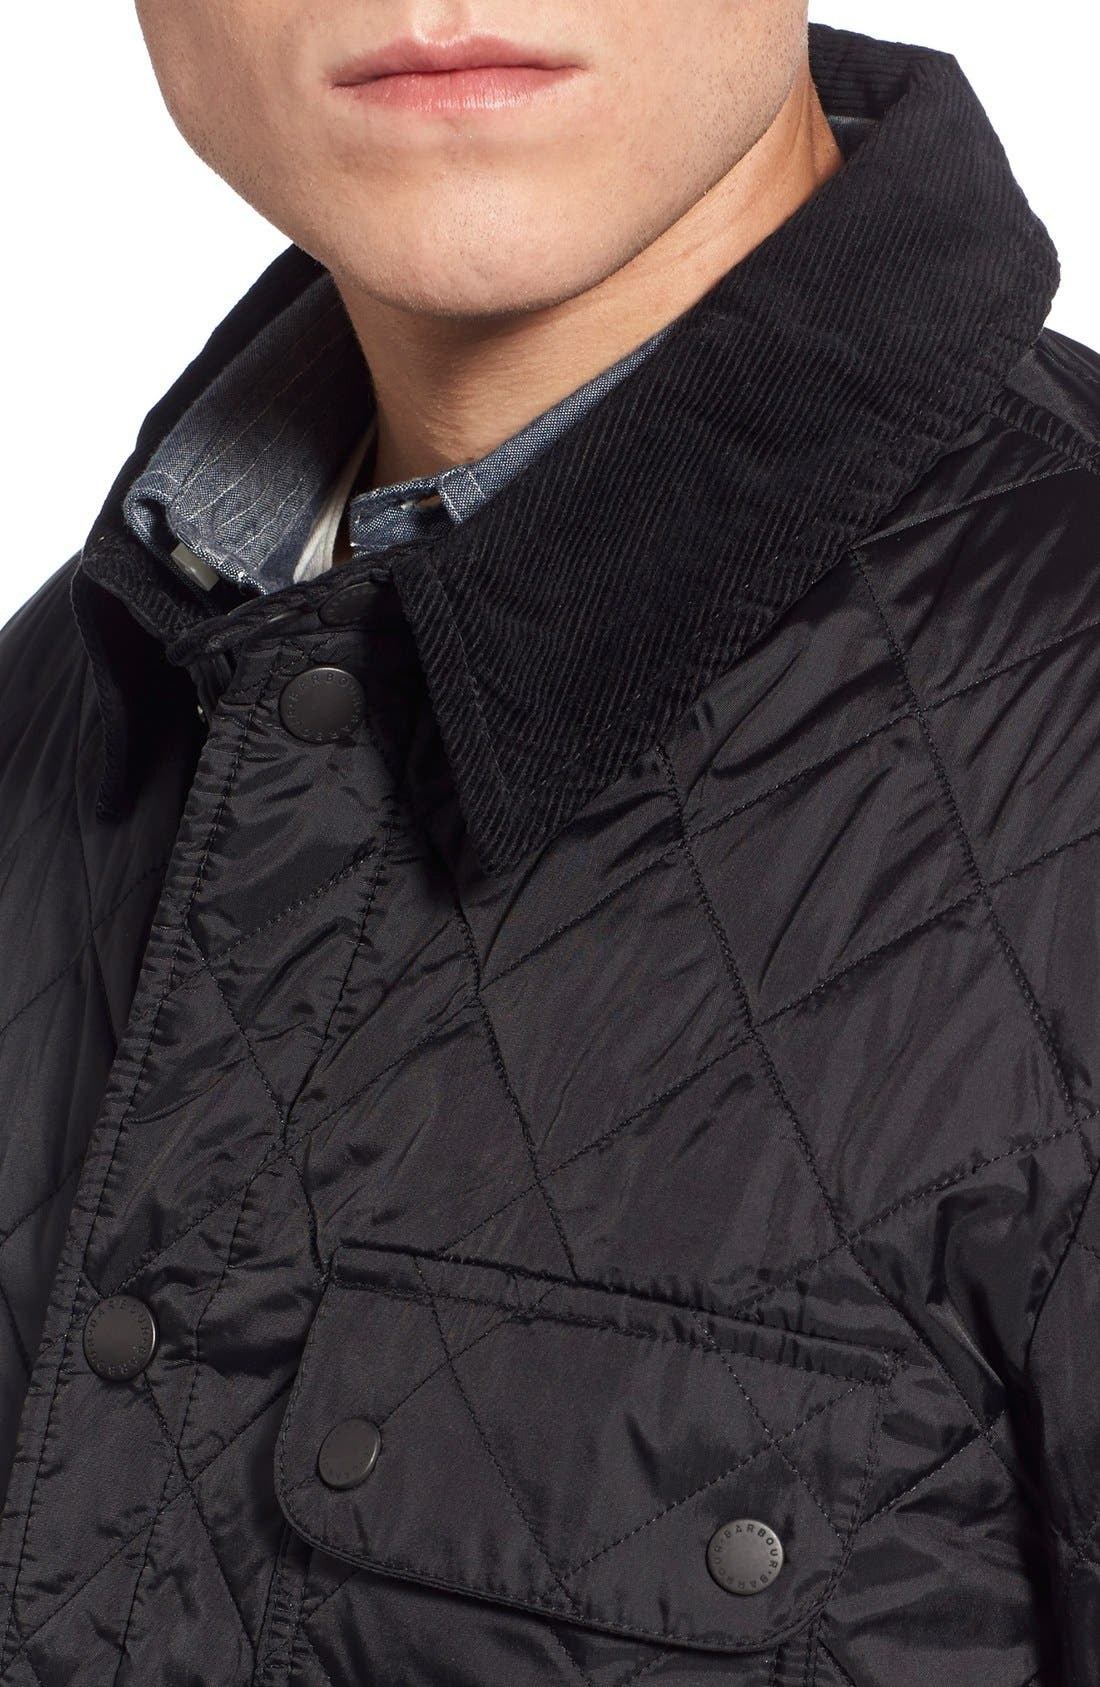 'Tinford' Regular Fit Quilted Jacket,                             Alternate thumbnail 4, color,                             001